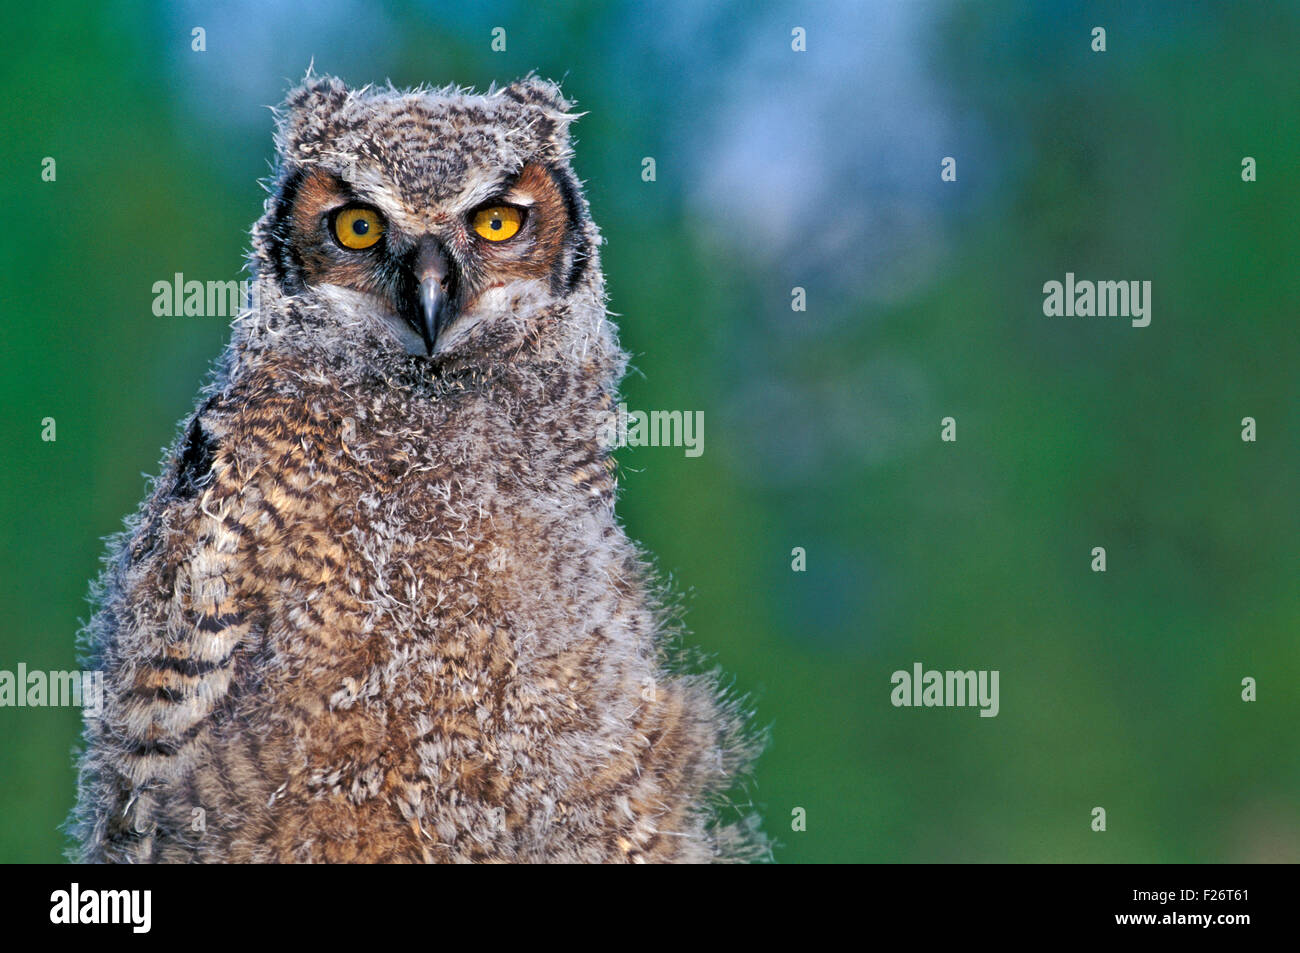 Young Great Horned Owl, portrait closeup - Stock Image